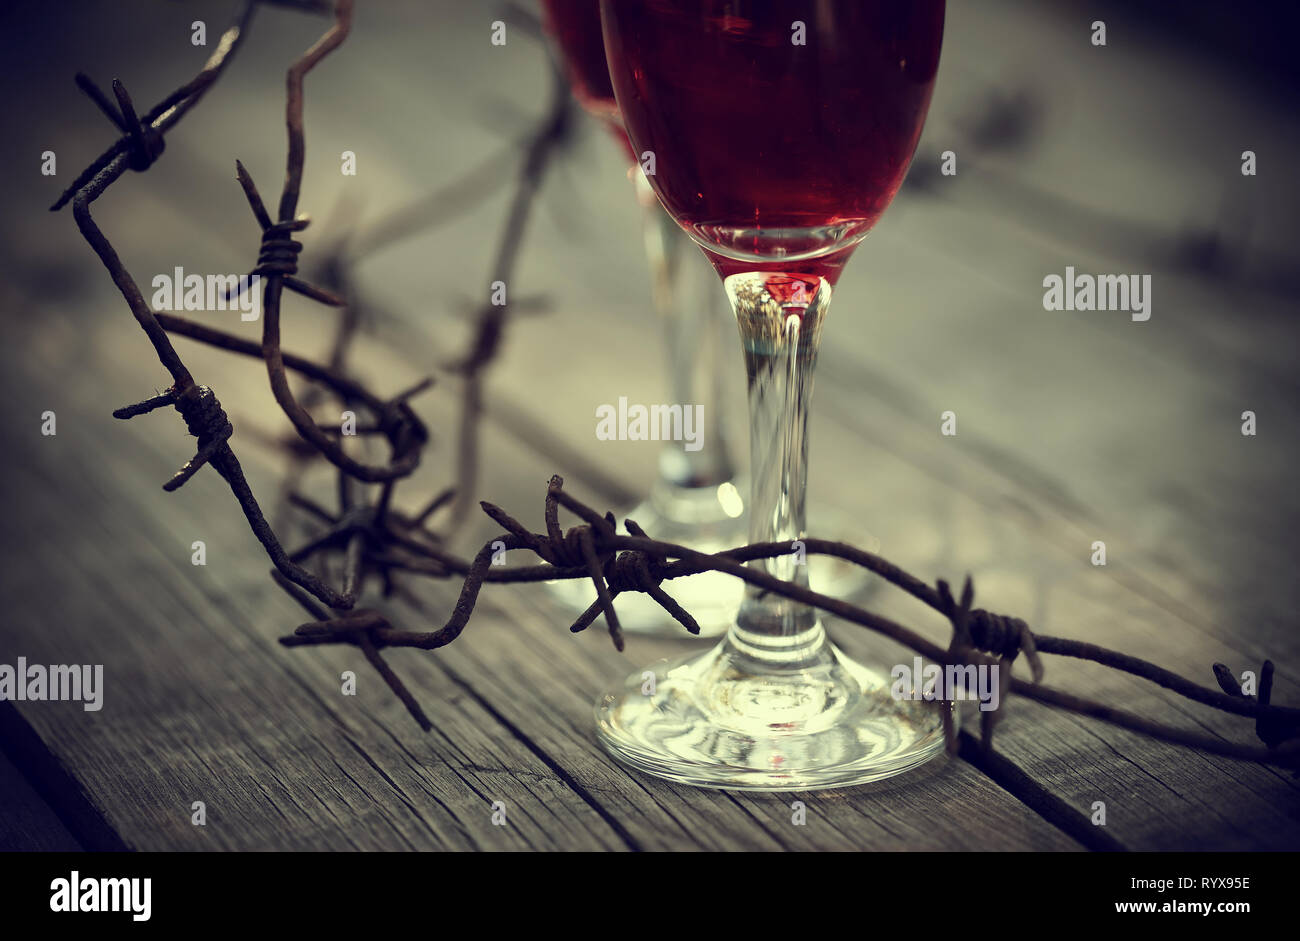 Rusty barbed wire and glasses with red wine on a table.  Alcoholic dependence. - Stock Image